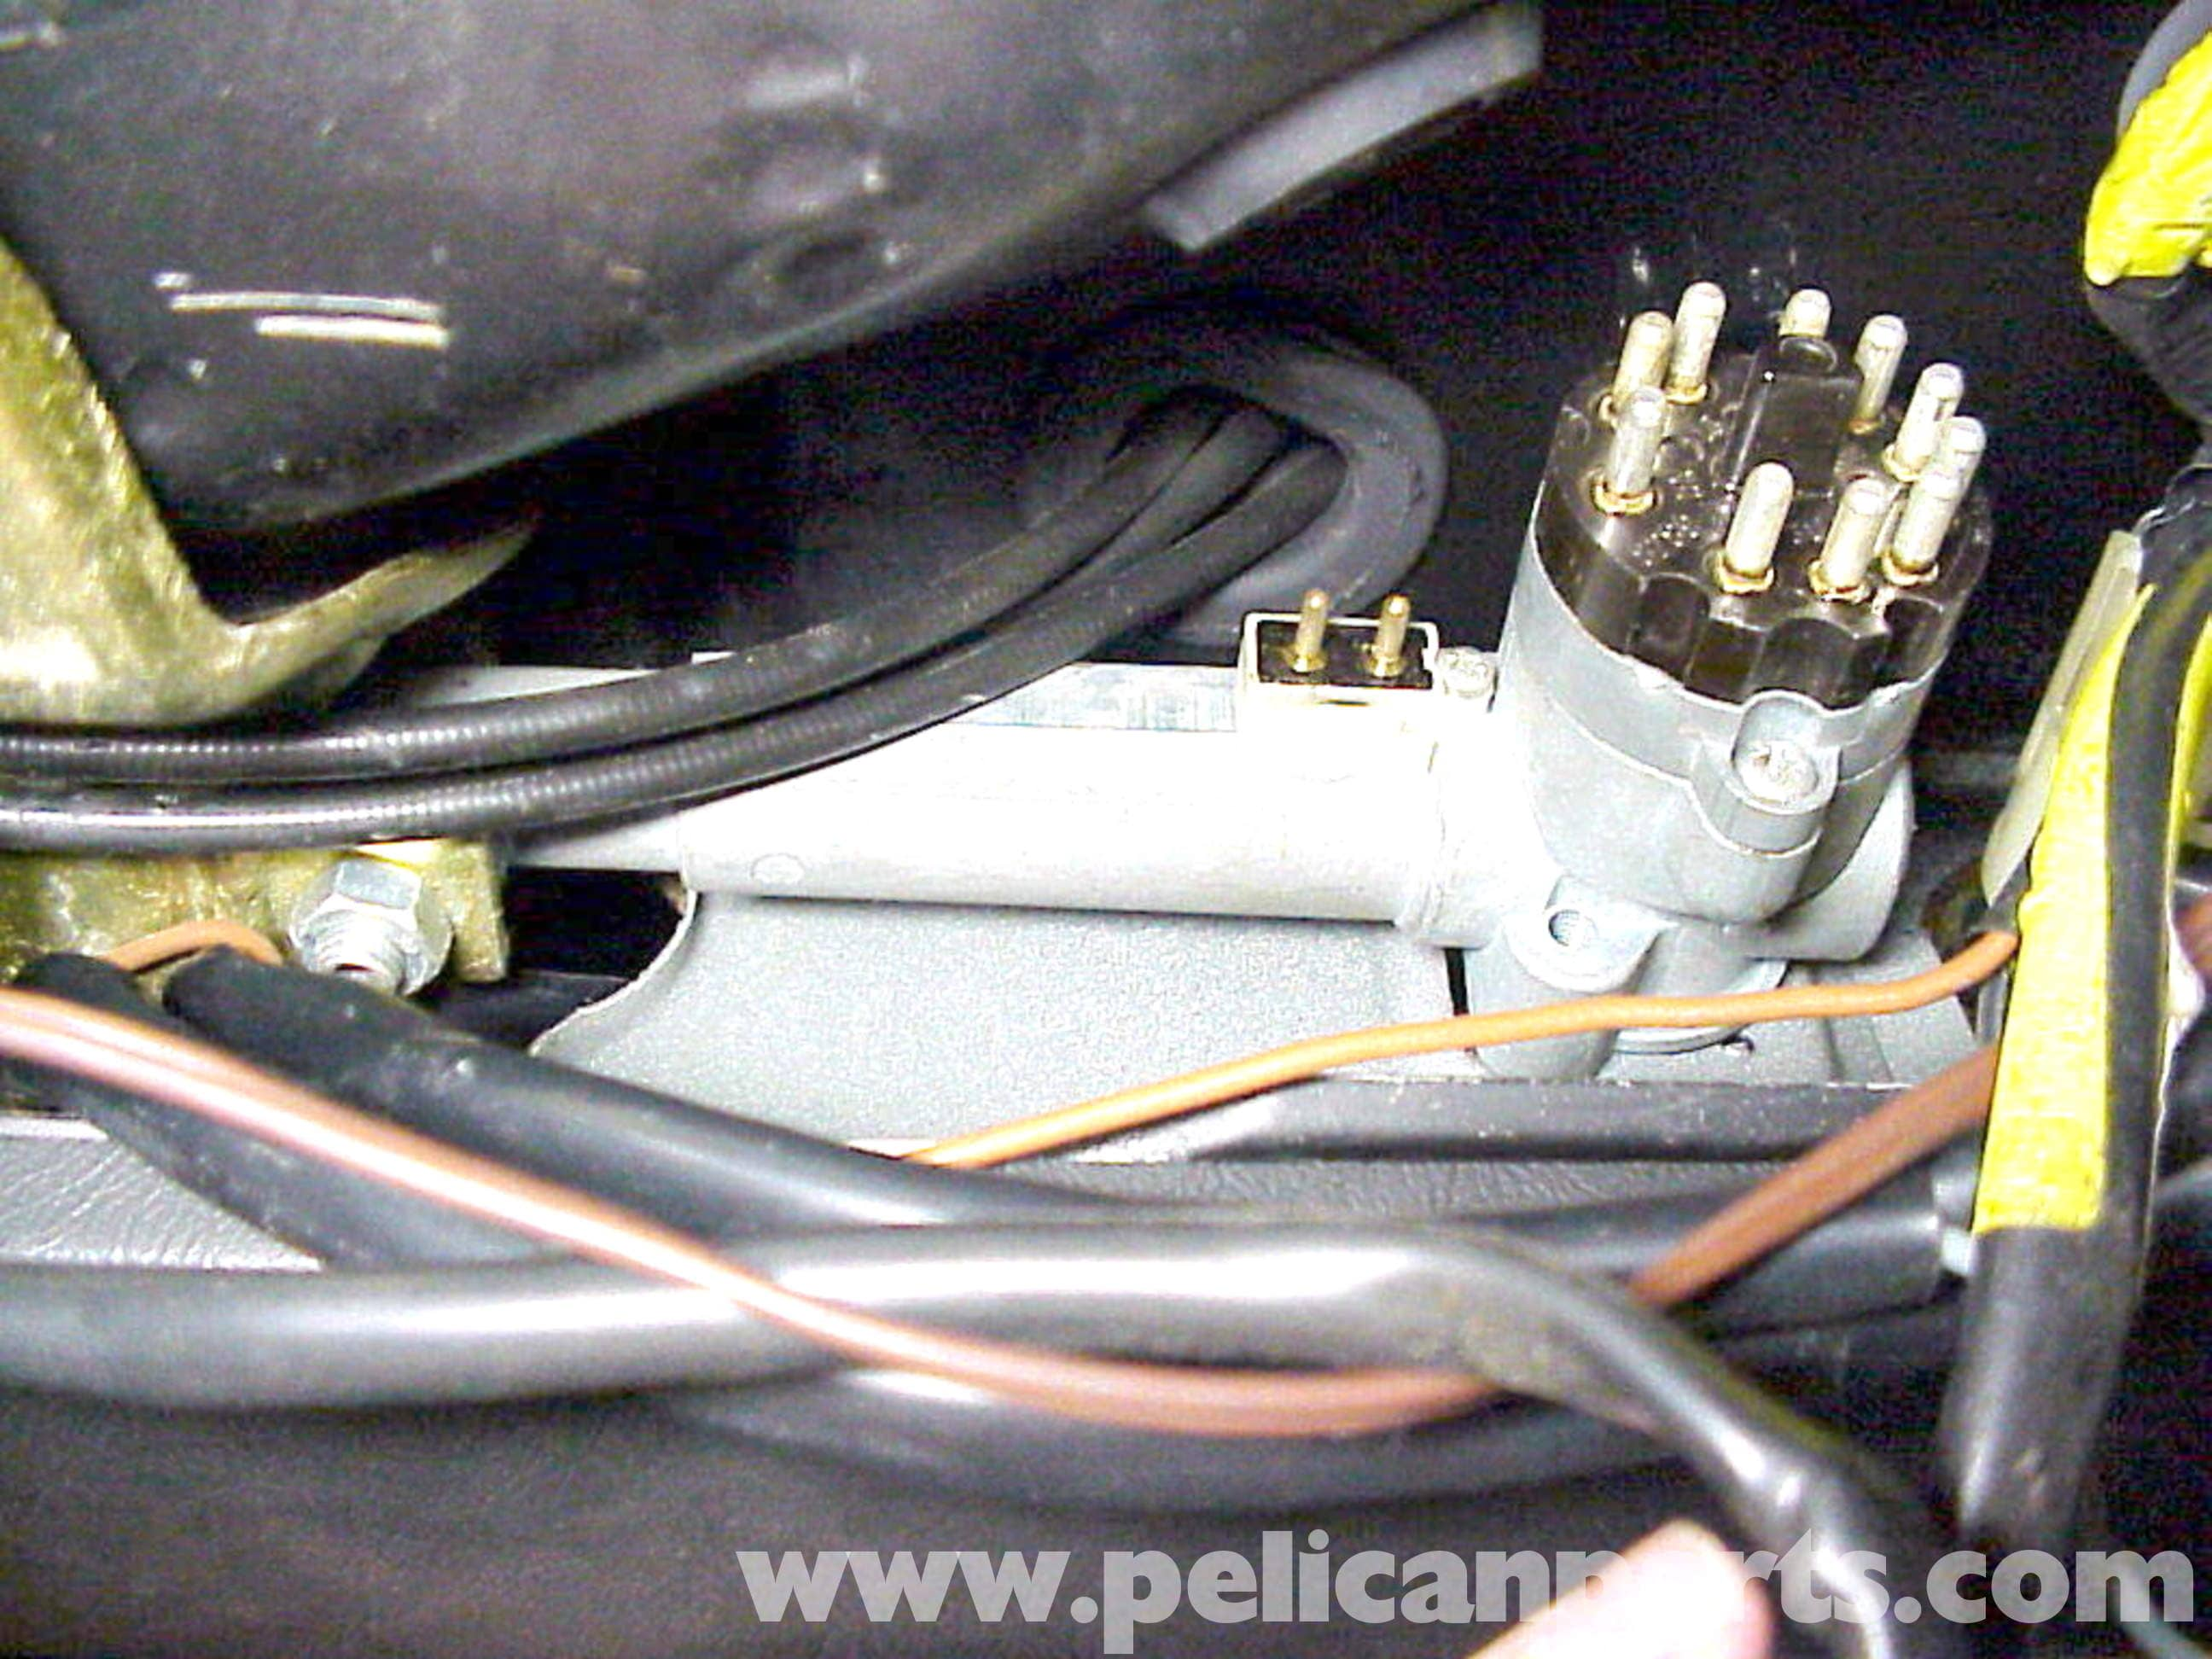 Pic2 1976 porsche 911 wiring diagram 1976 triumph tr6 wiring diagram 1967 porsche 911 wiring diagram at readyjetset.co